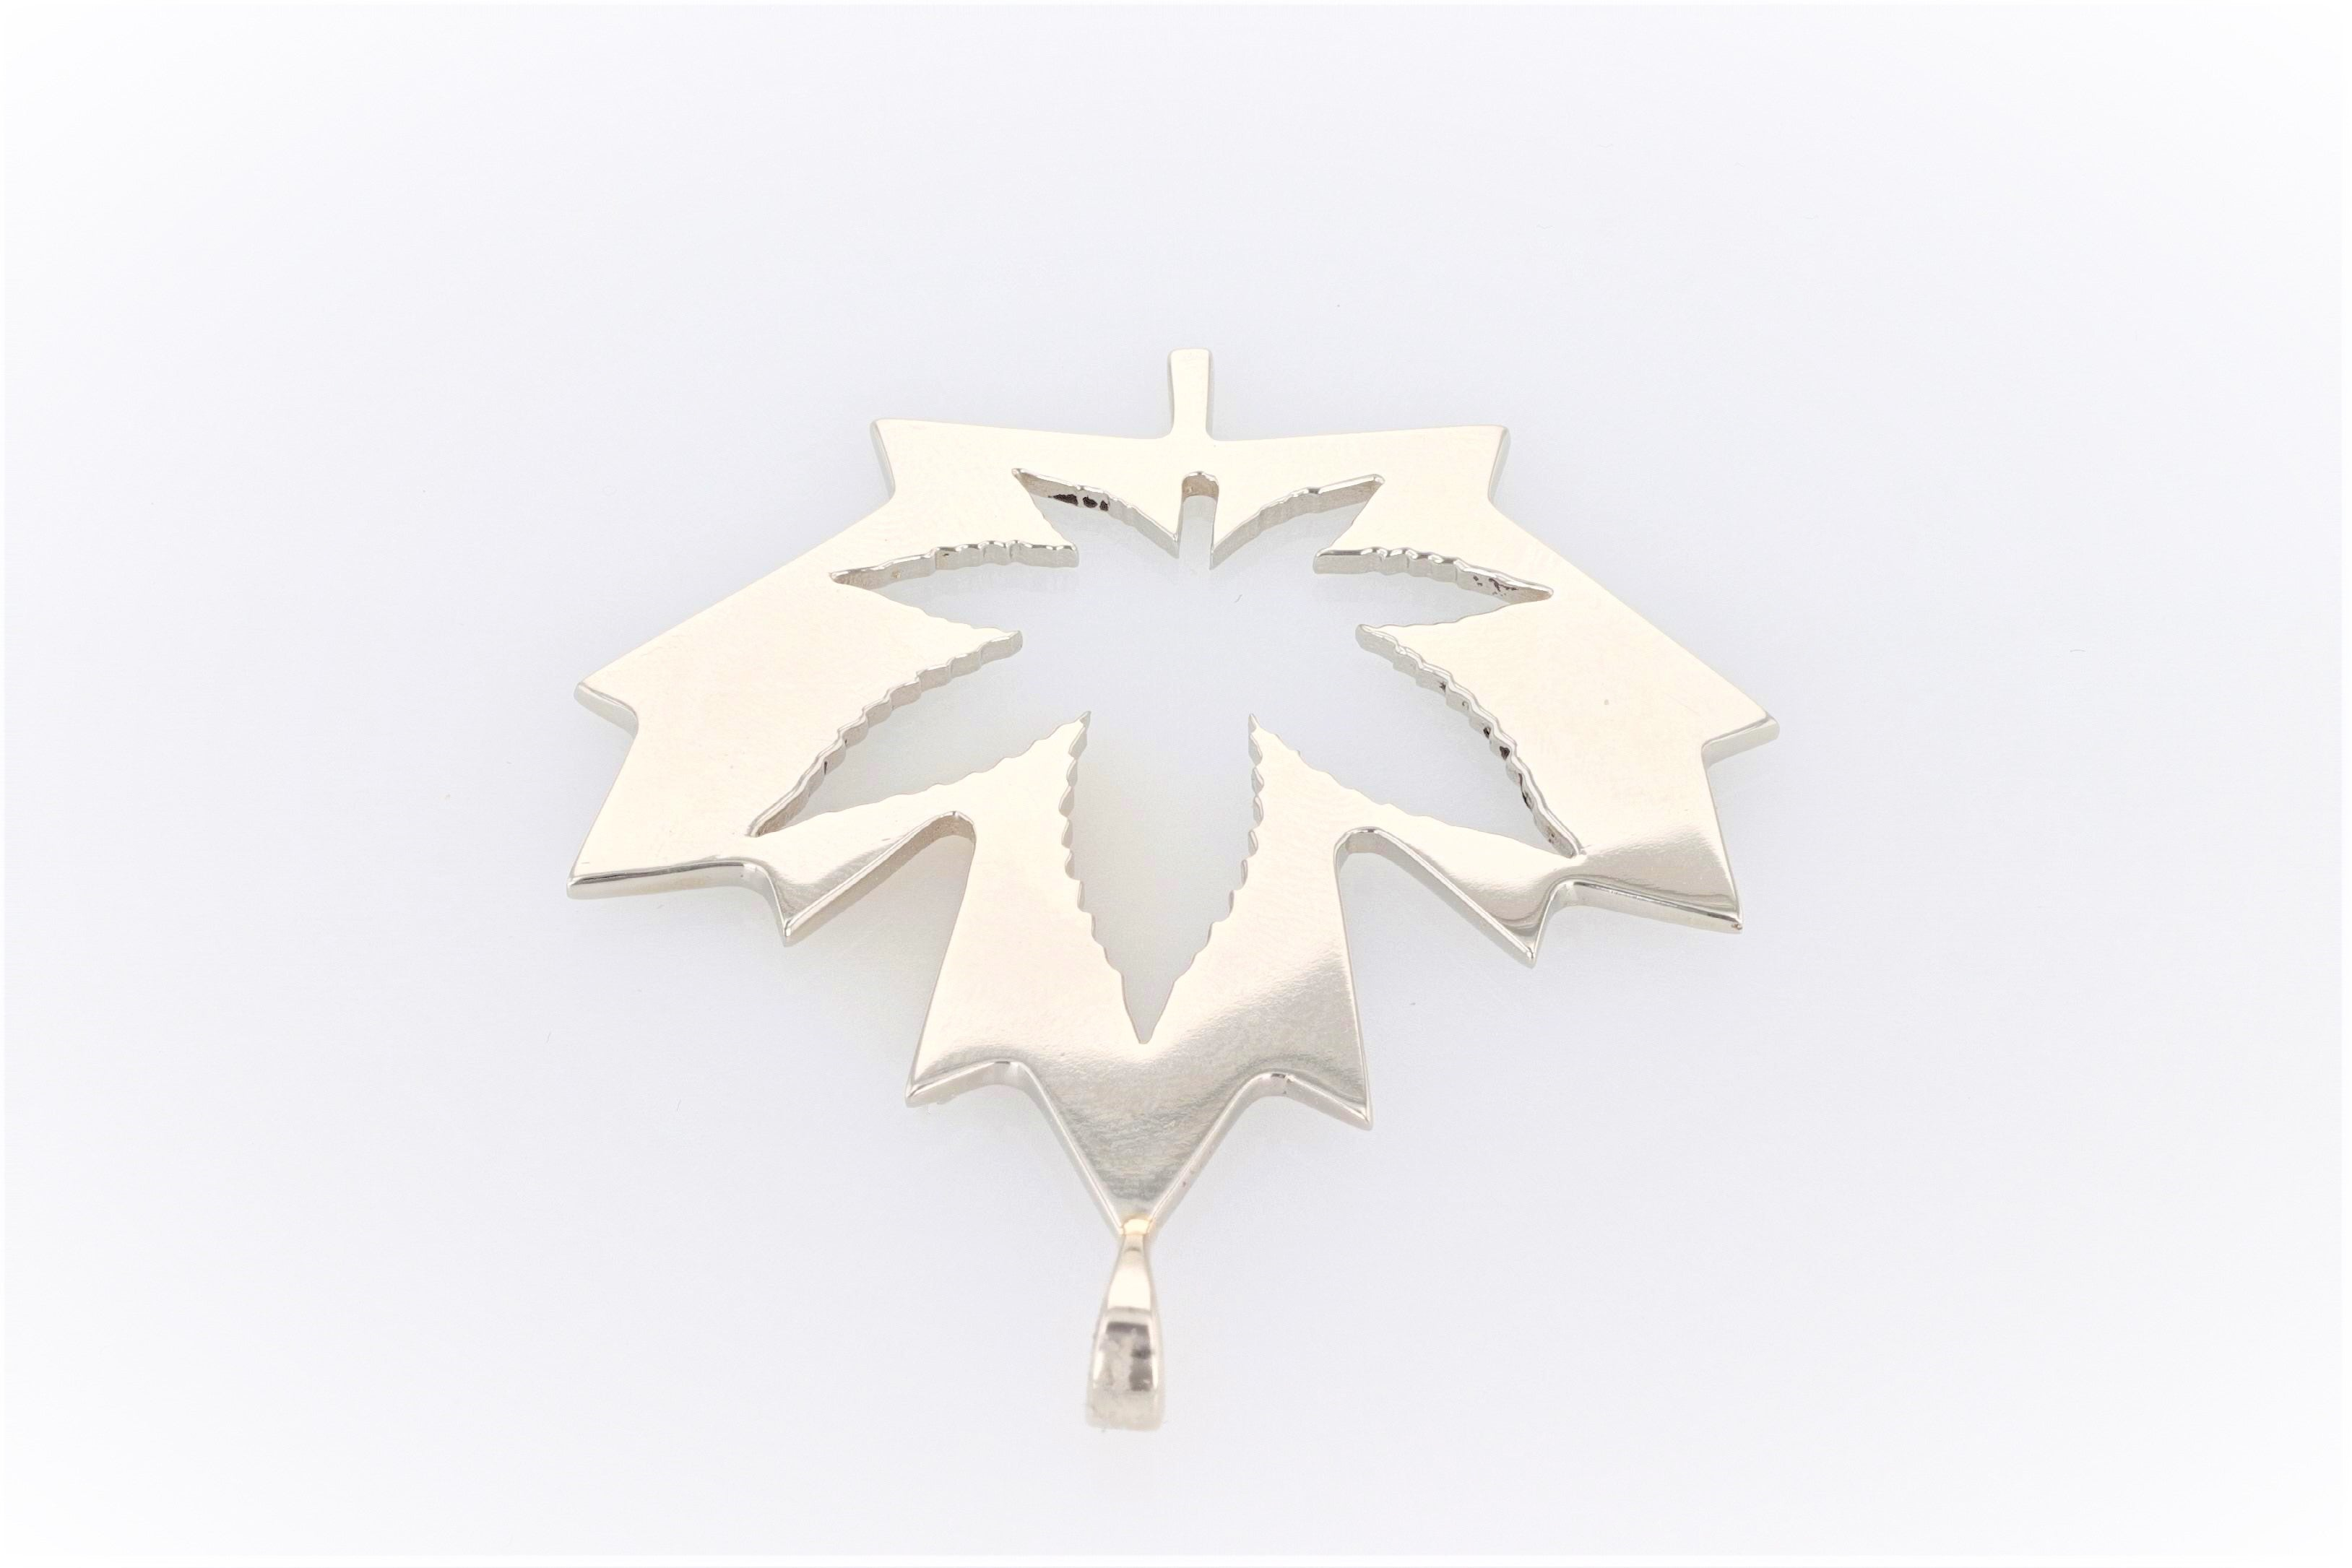 10K White Gold (Stamped) Maple Leaf Pendant with Marijuana Leaf Cut-Out